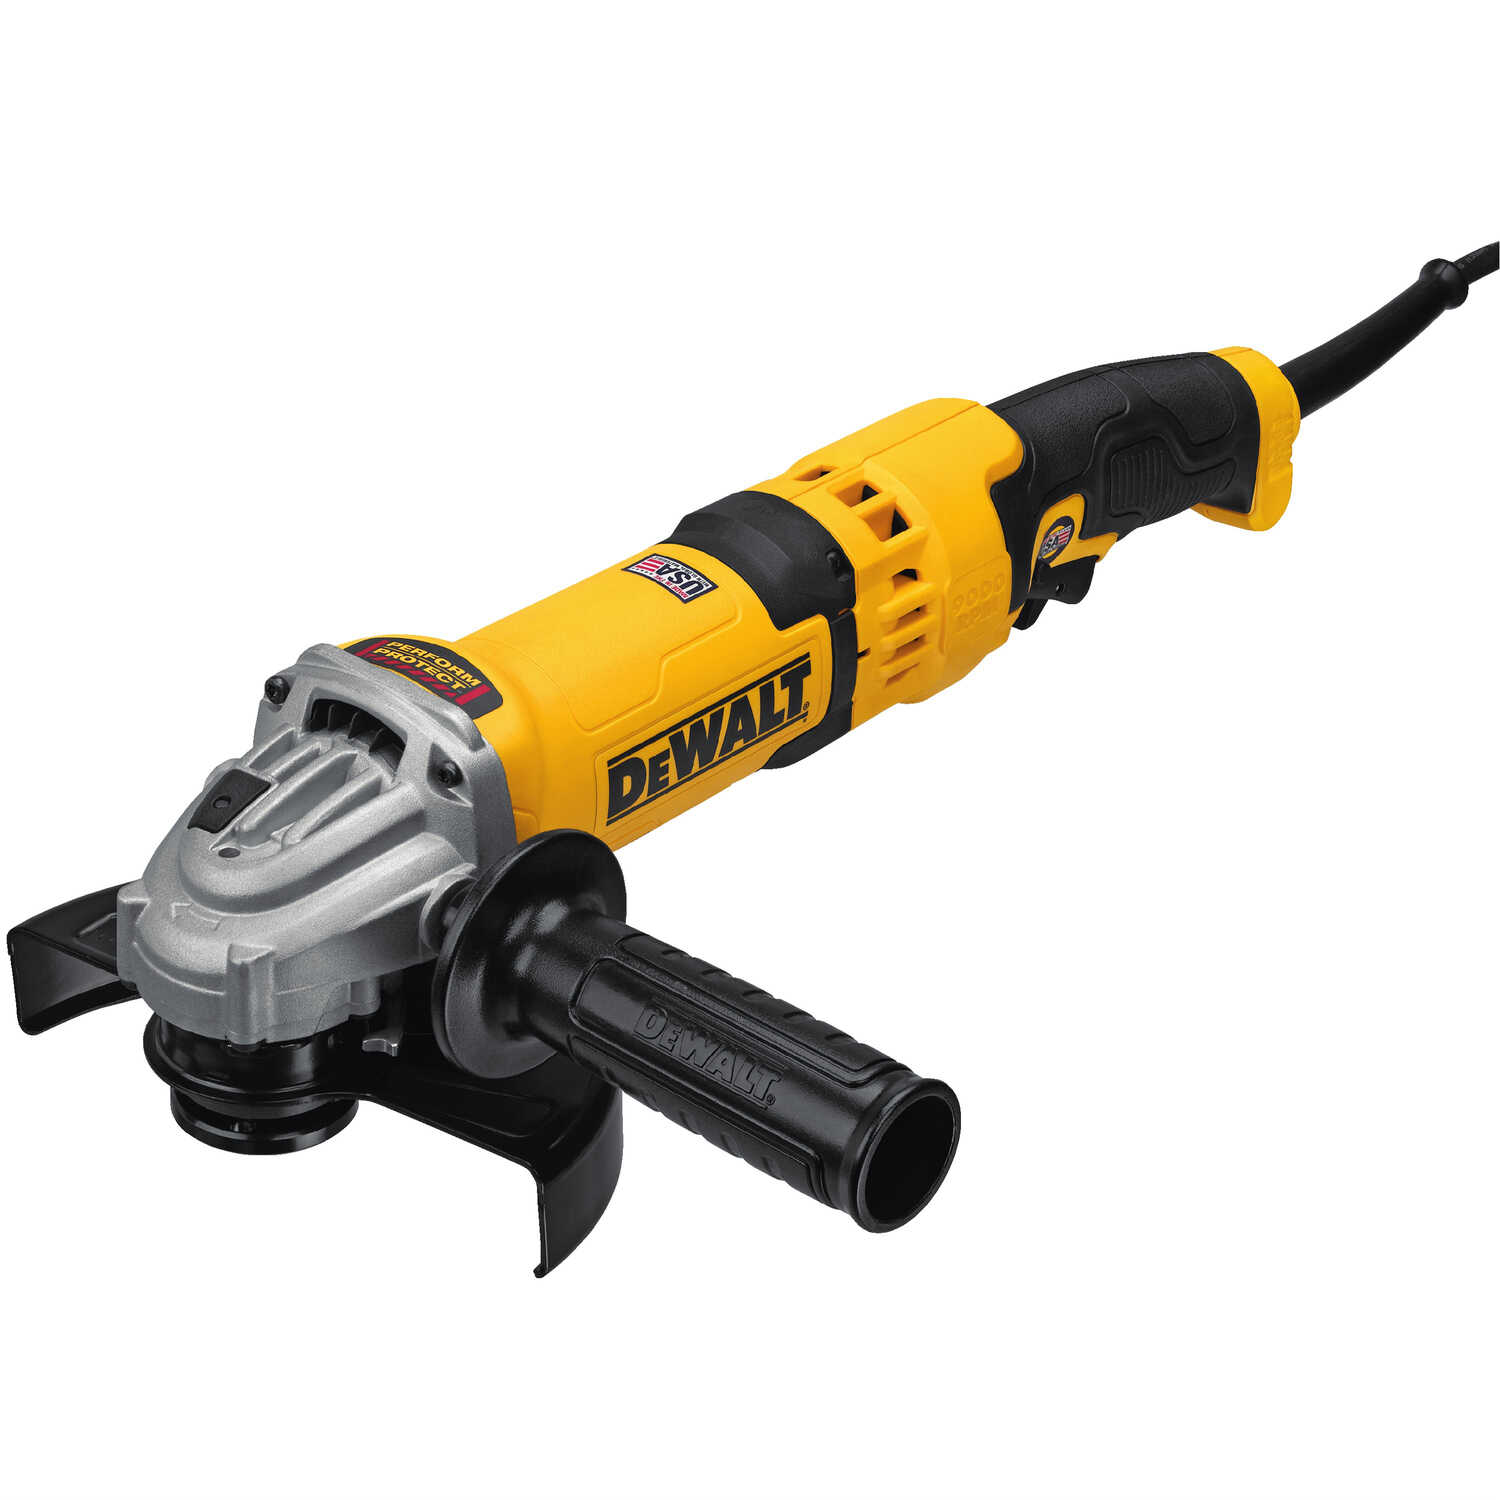 DeWalt  Corded  13 amps 4-1/2 to 6 in. Small Angle Grinder  Bare Tool  Trigger  9000 rpm